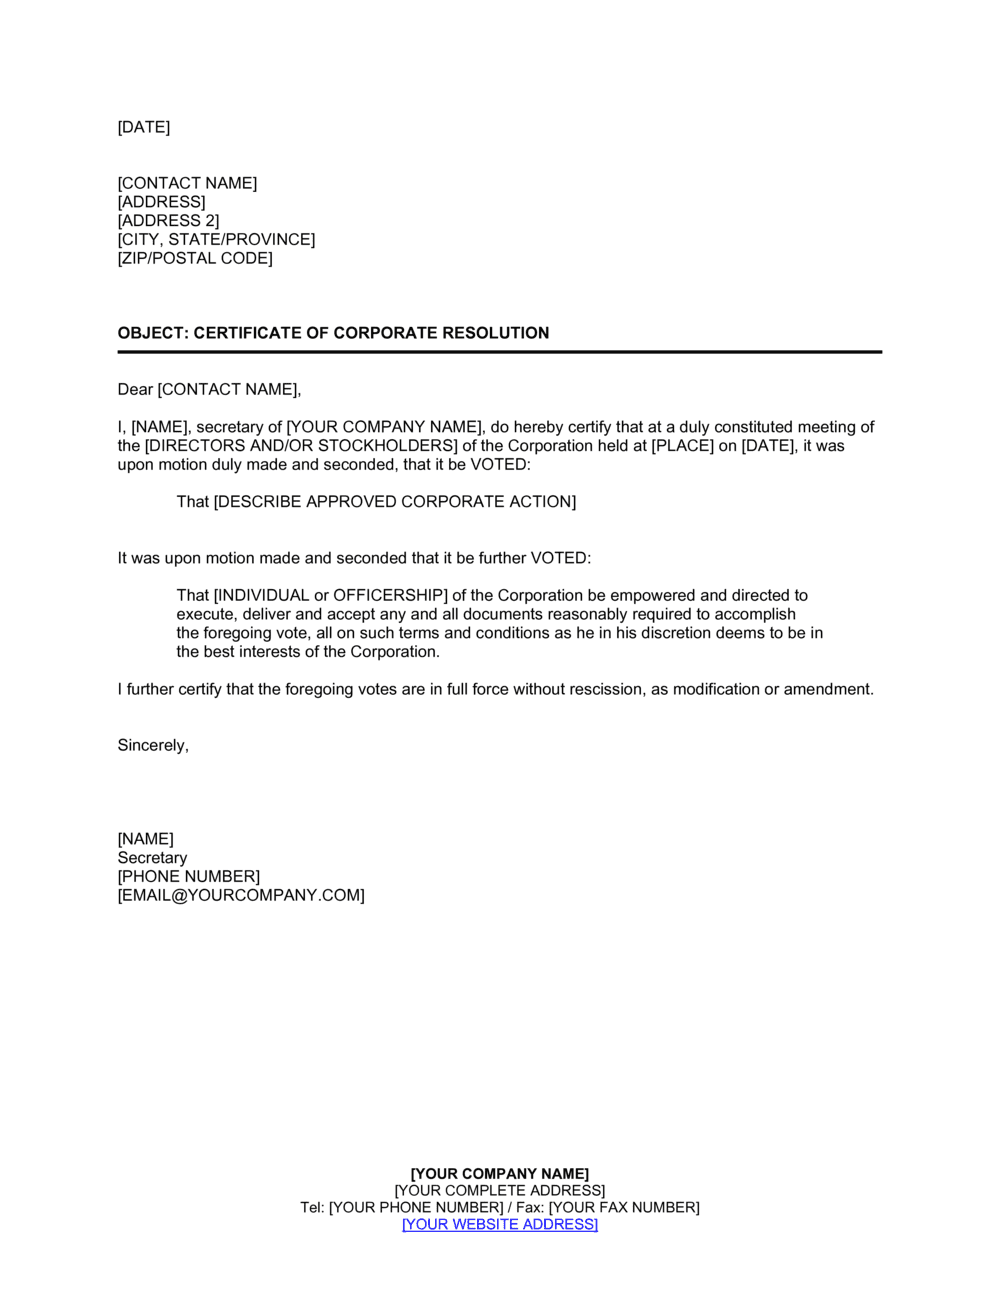 Business-in-a-Box's Certificate of Corporate Resolution Template